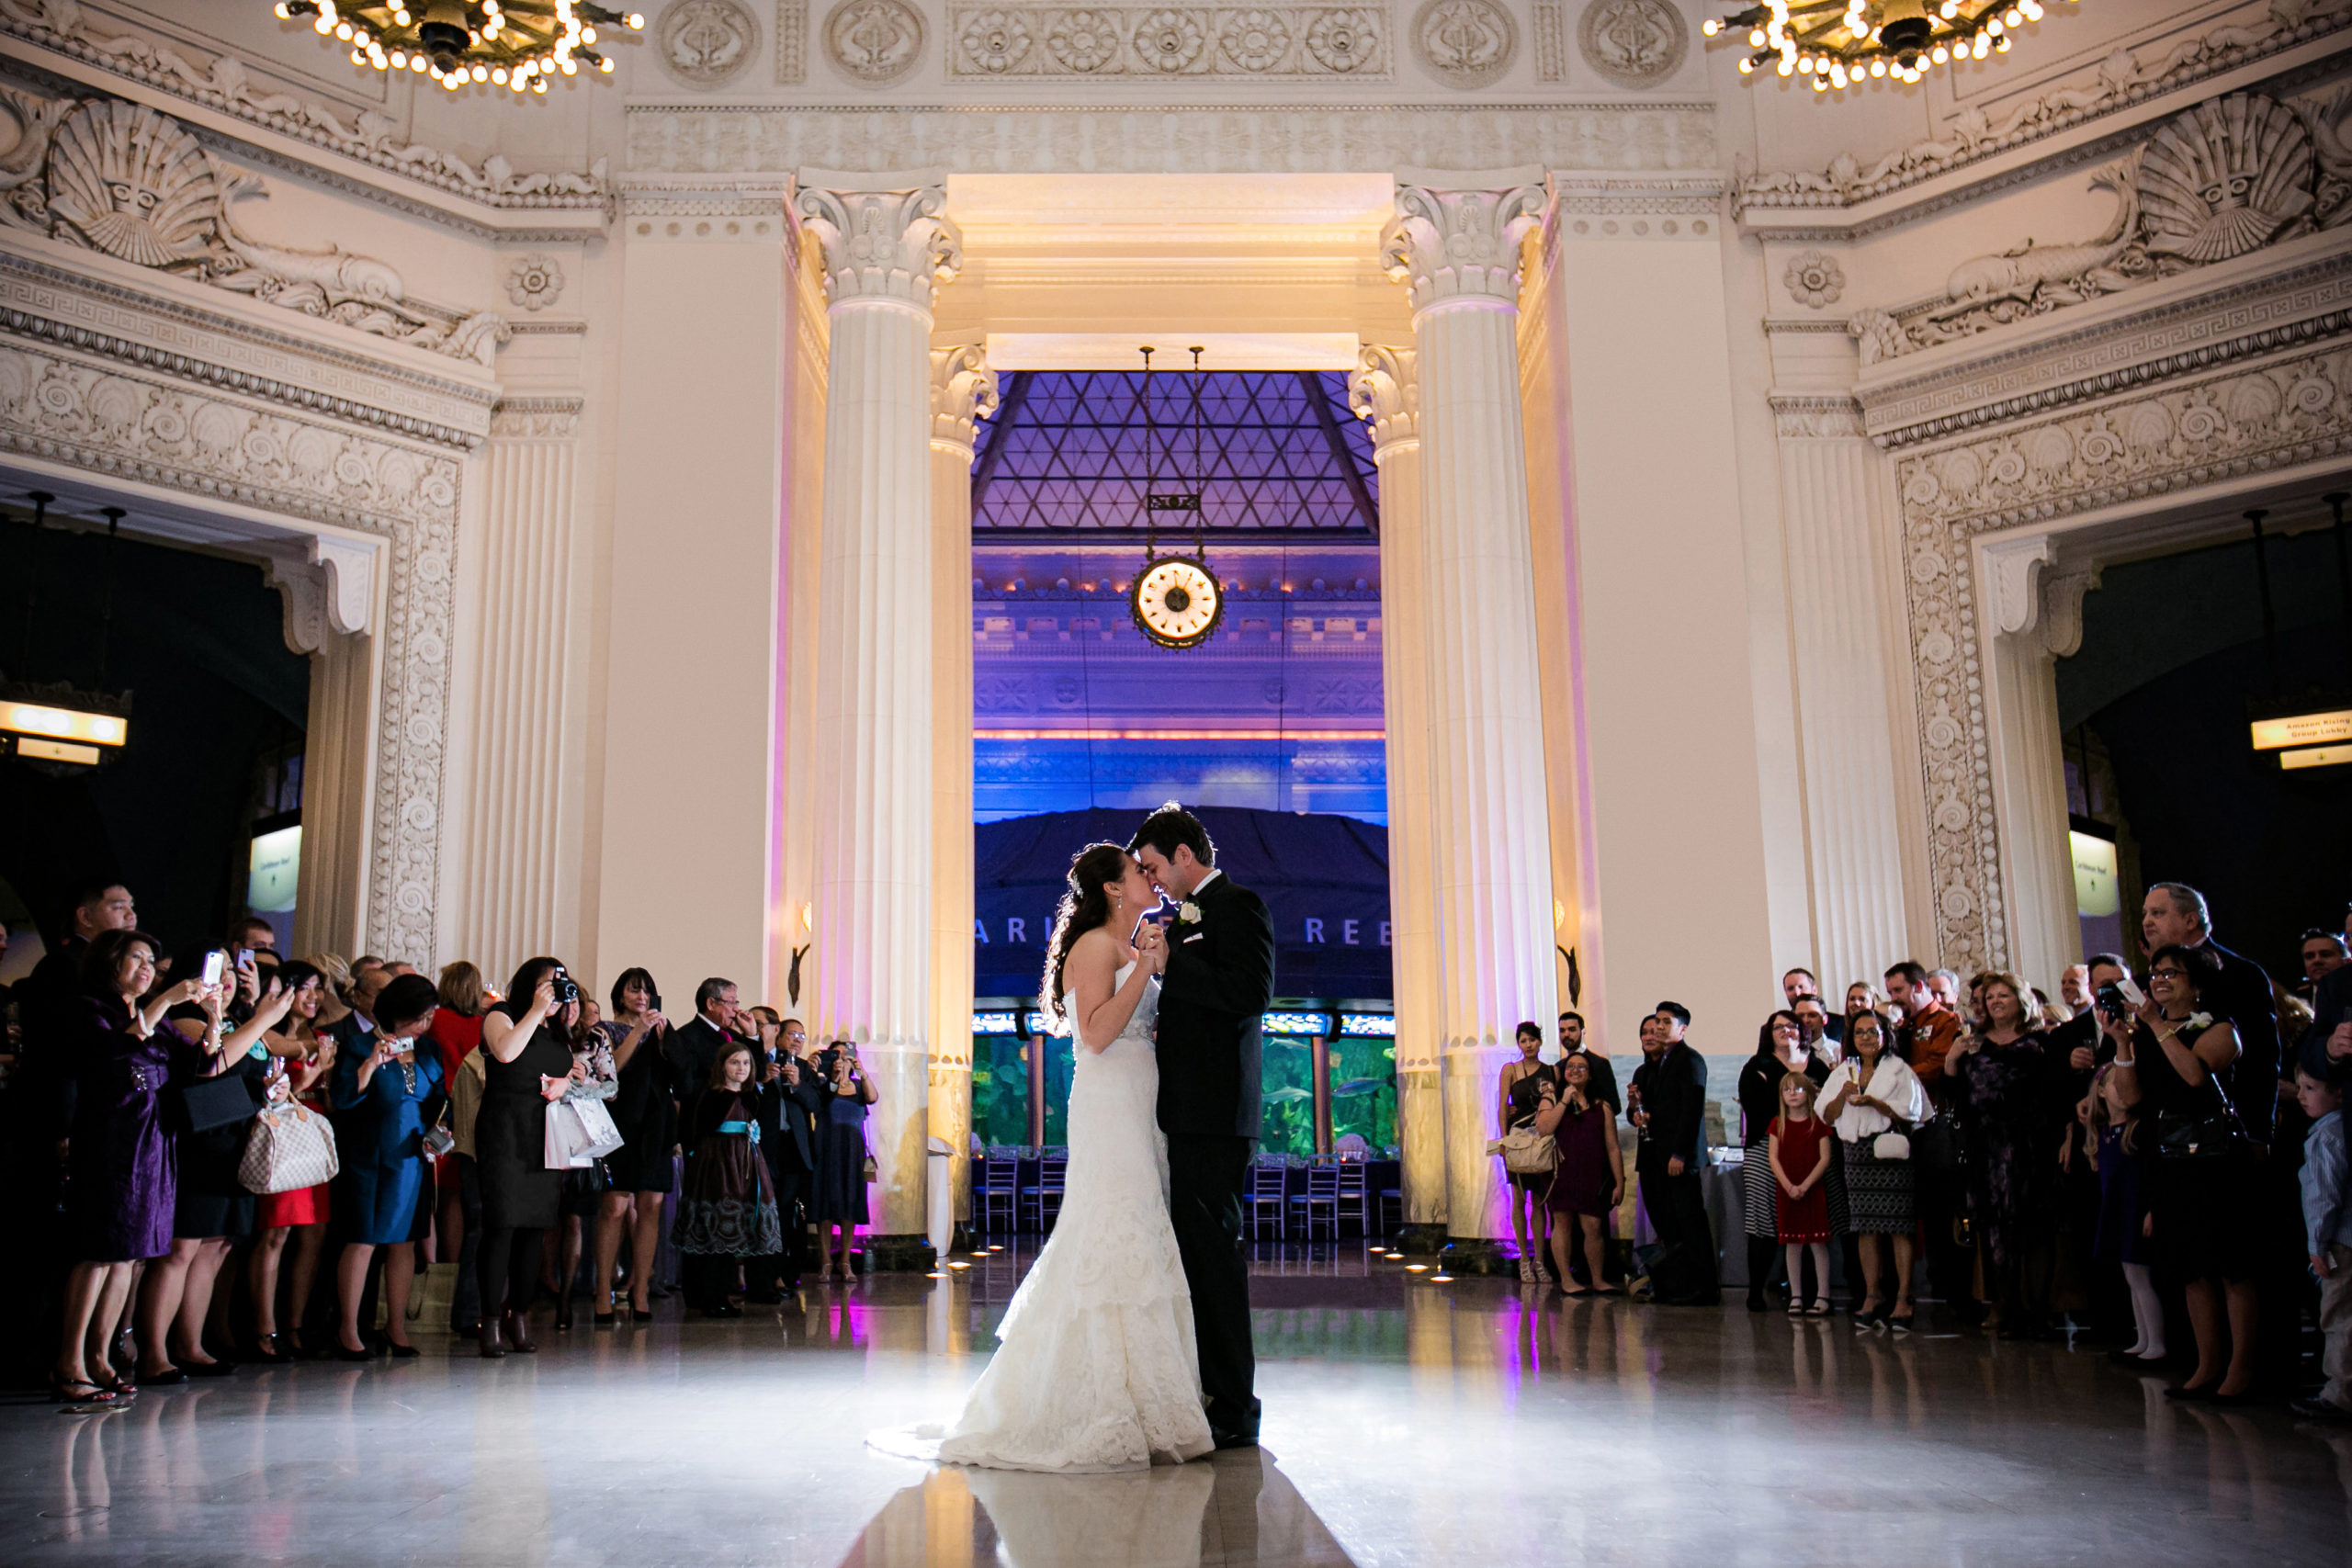 Married couple dancing at Shedd Aquarium